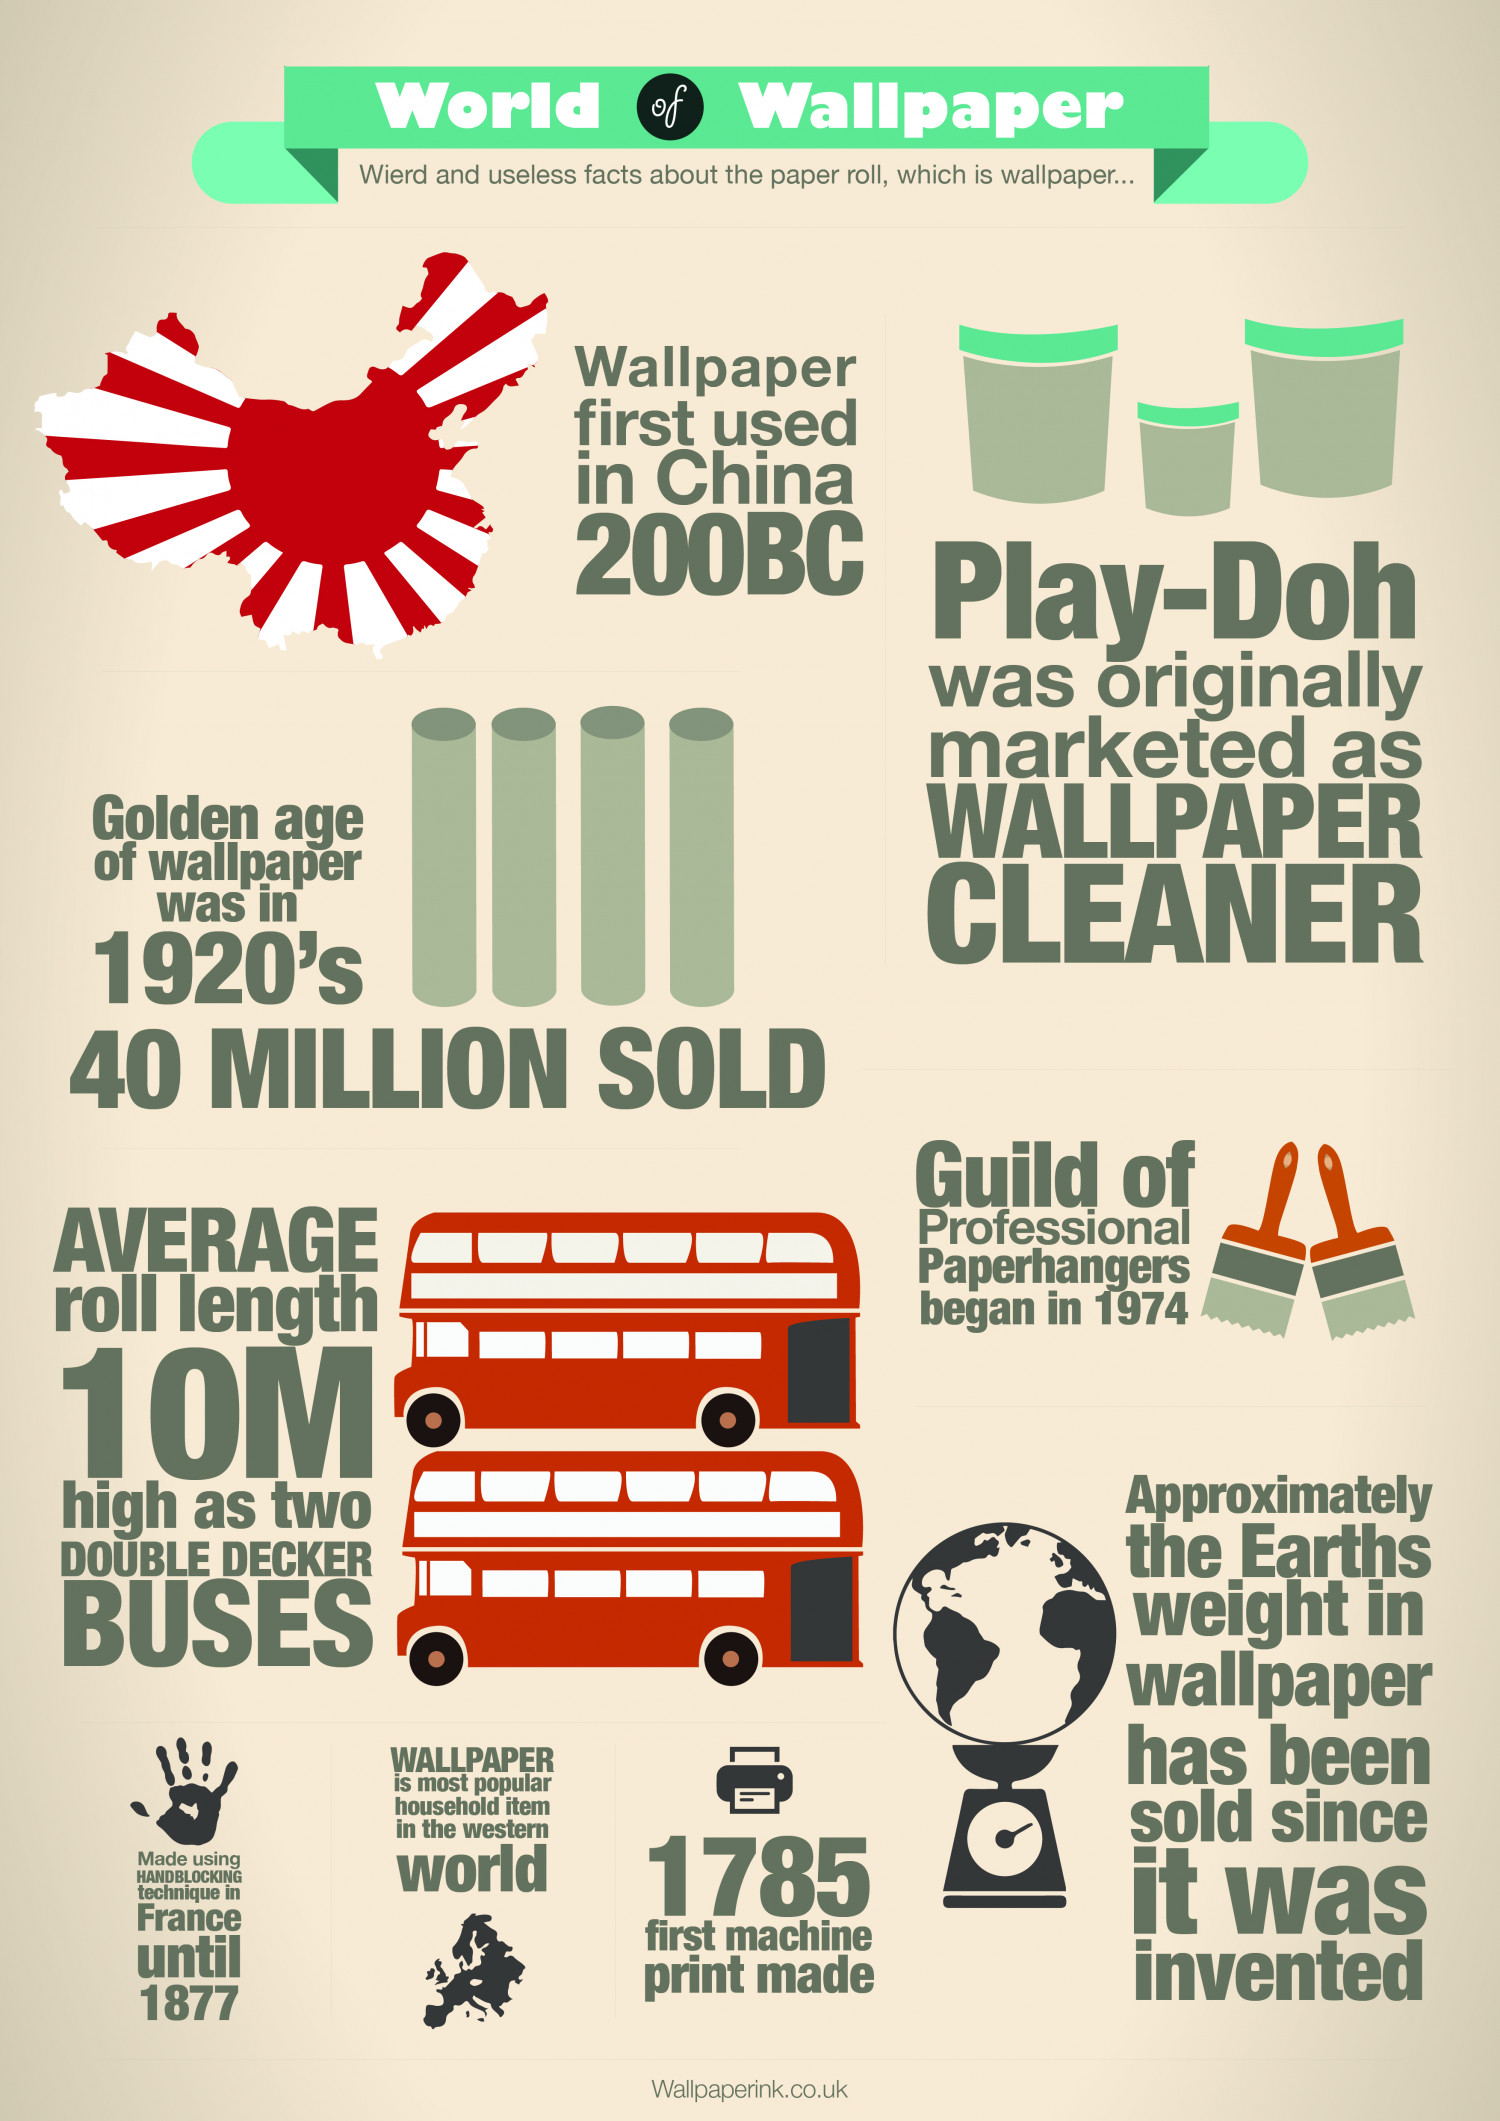 The World of Wallpaper Infographic